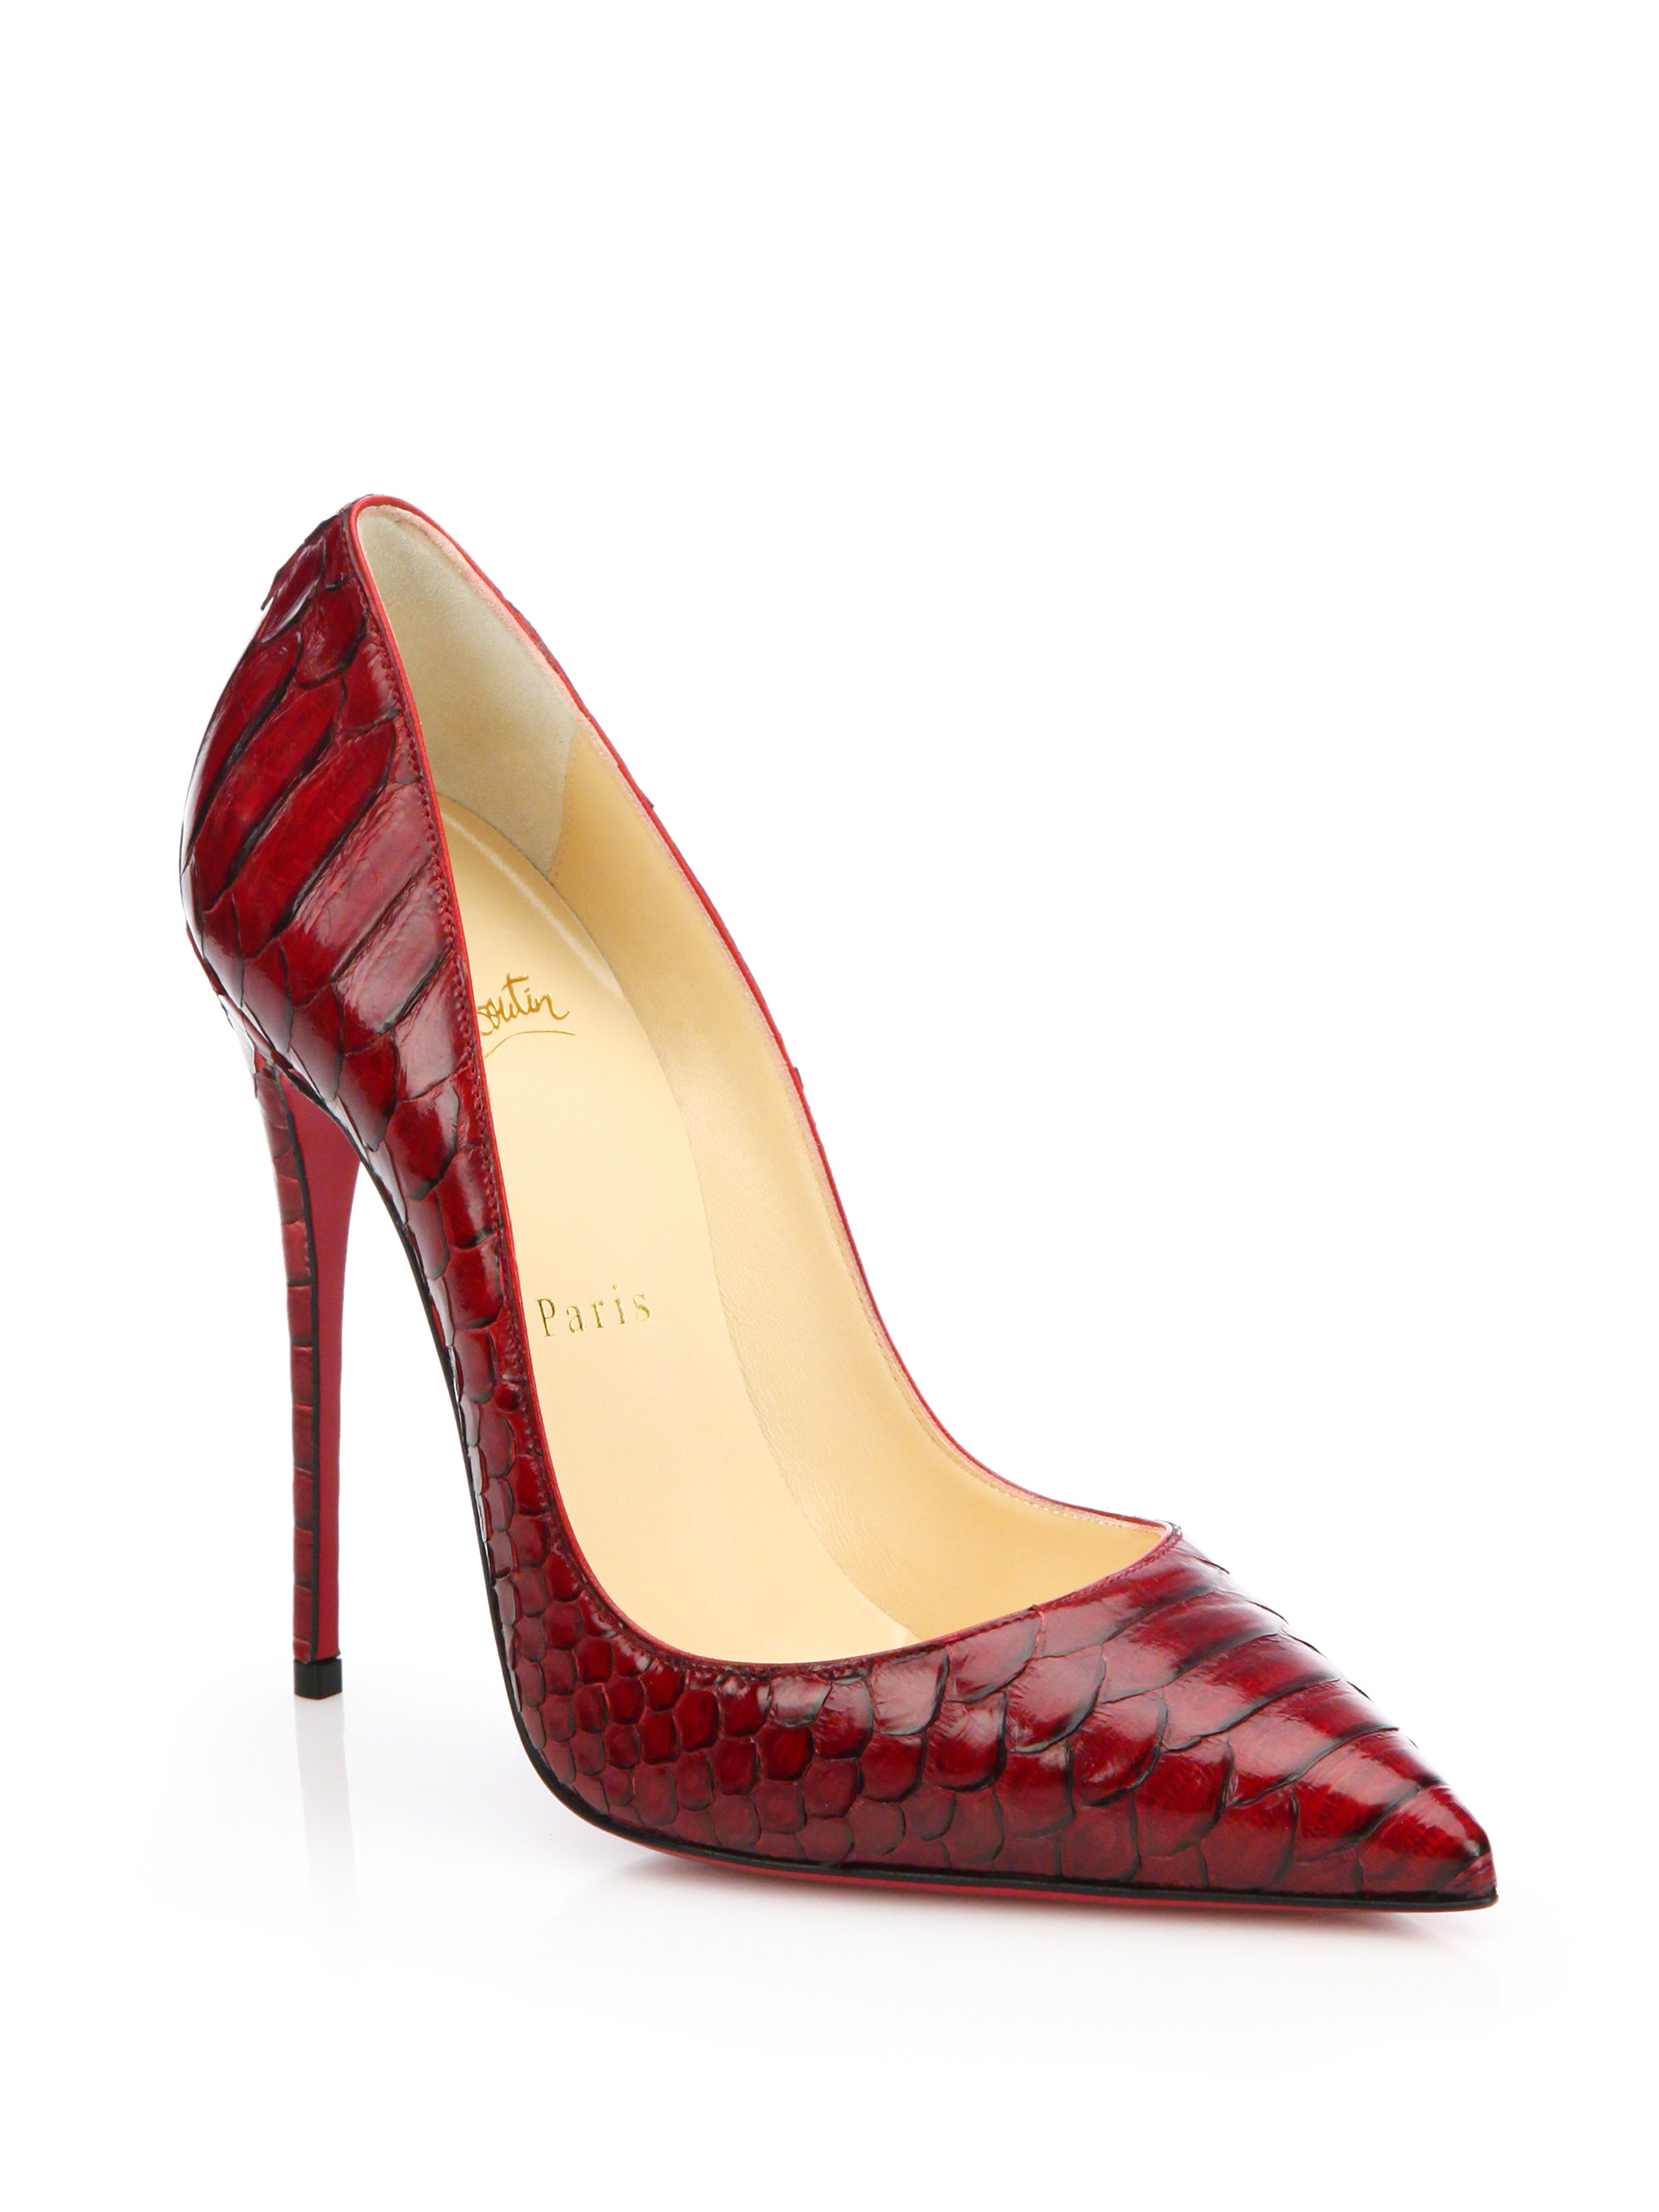 lyst christian louboutin so kate python pumps in red. Black Bedroom Furniture Sets. Home Design Ideas